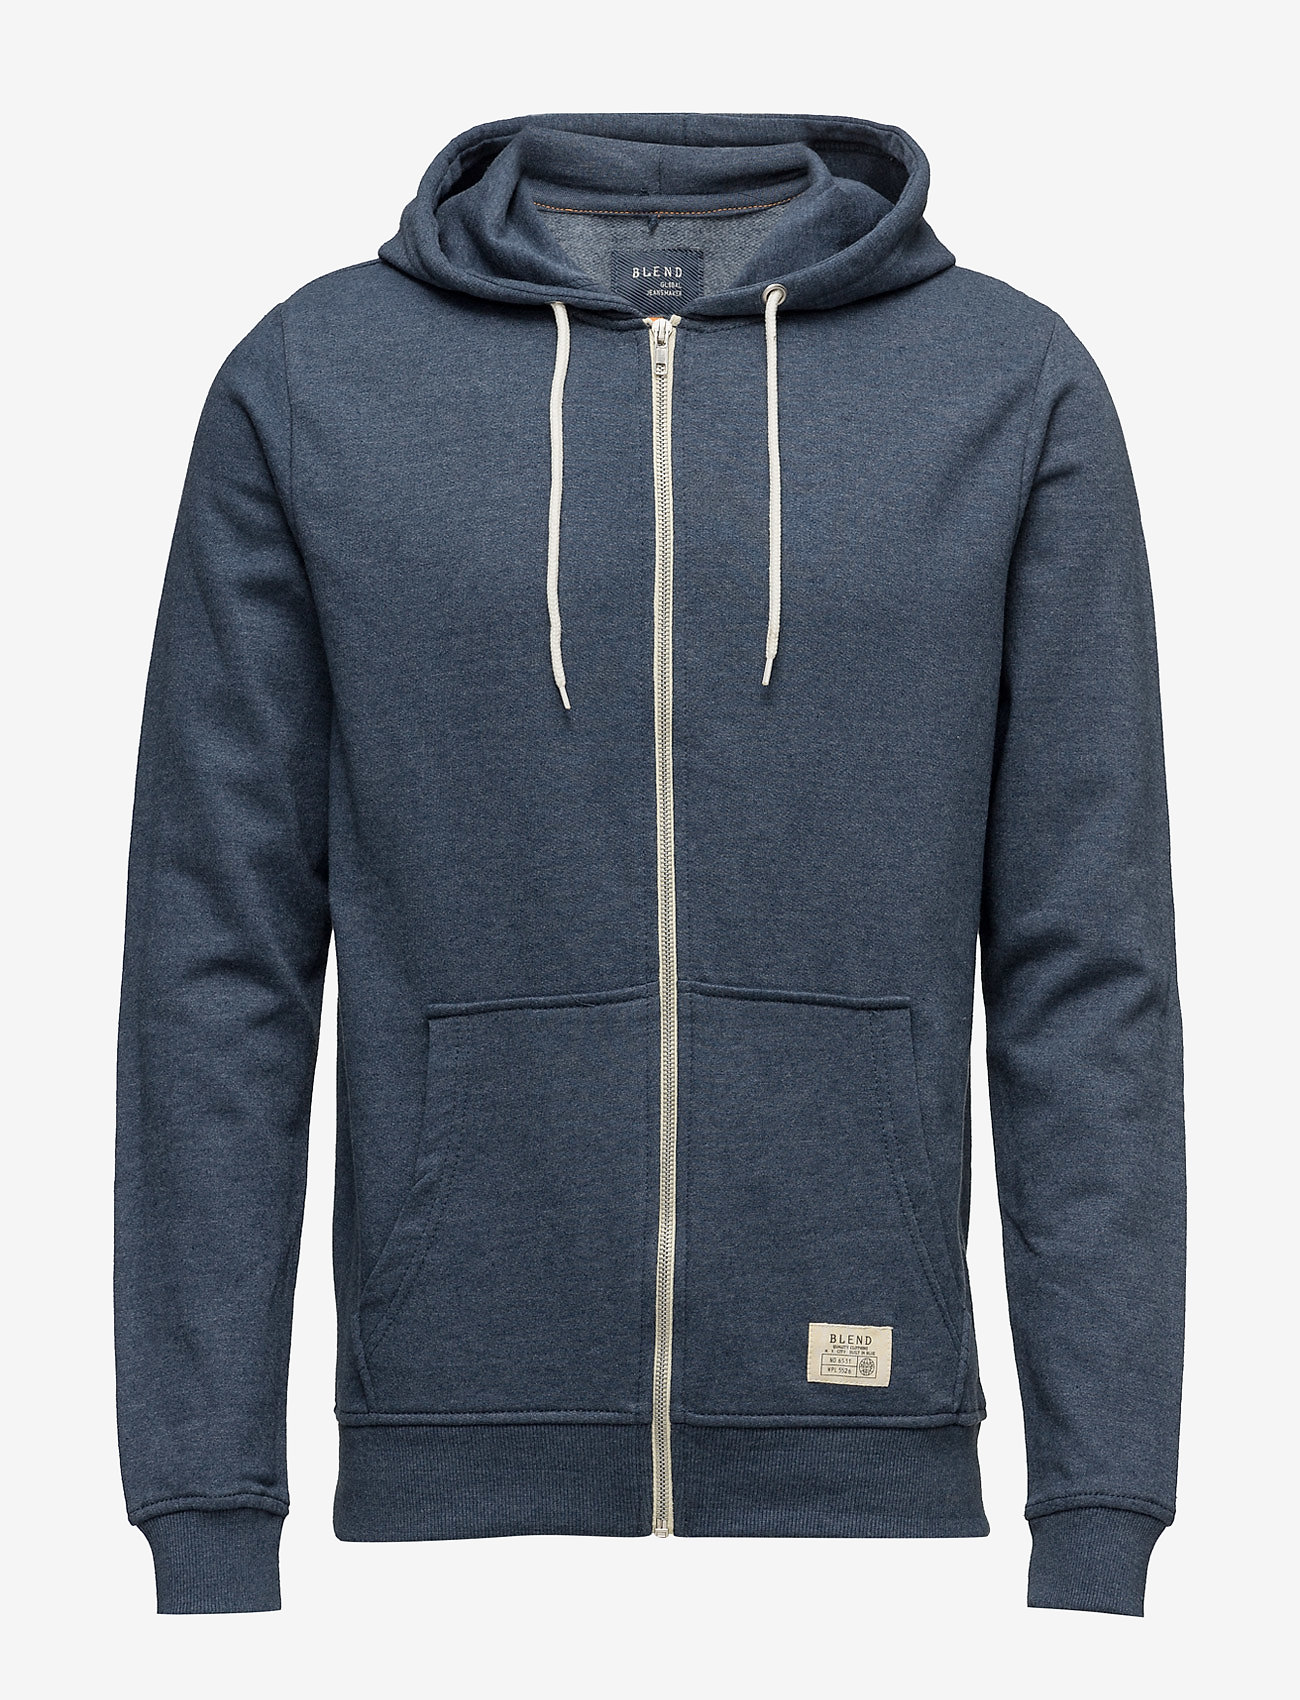 Blend - BHNOAH sweatshirt - hoodies - ensign blue - 0